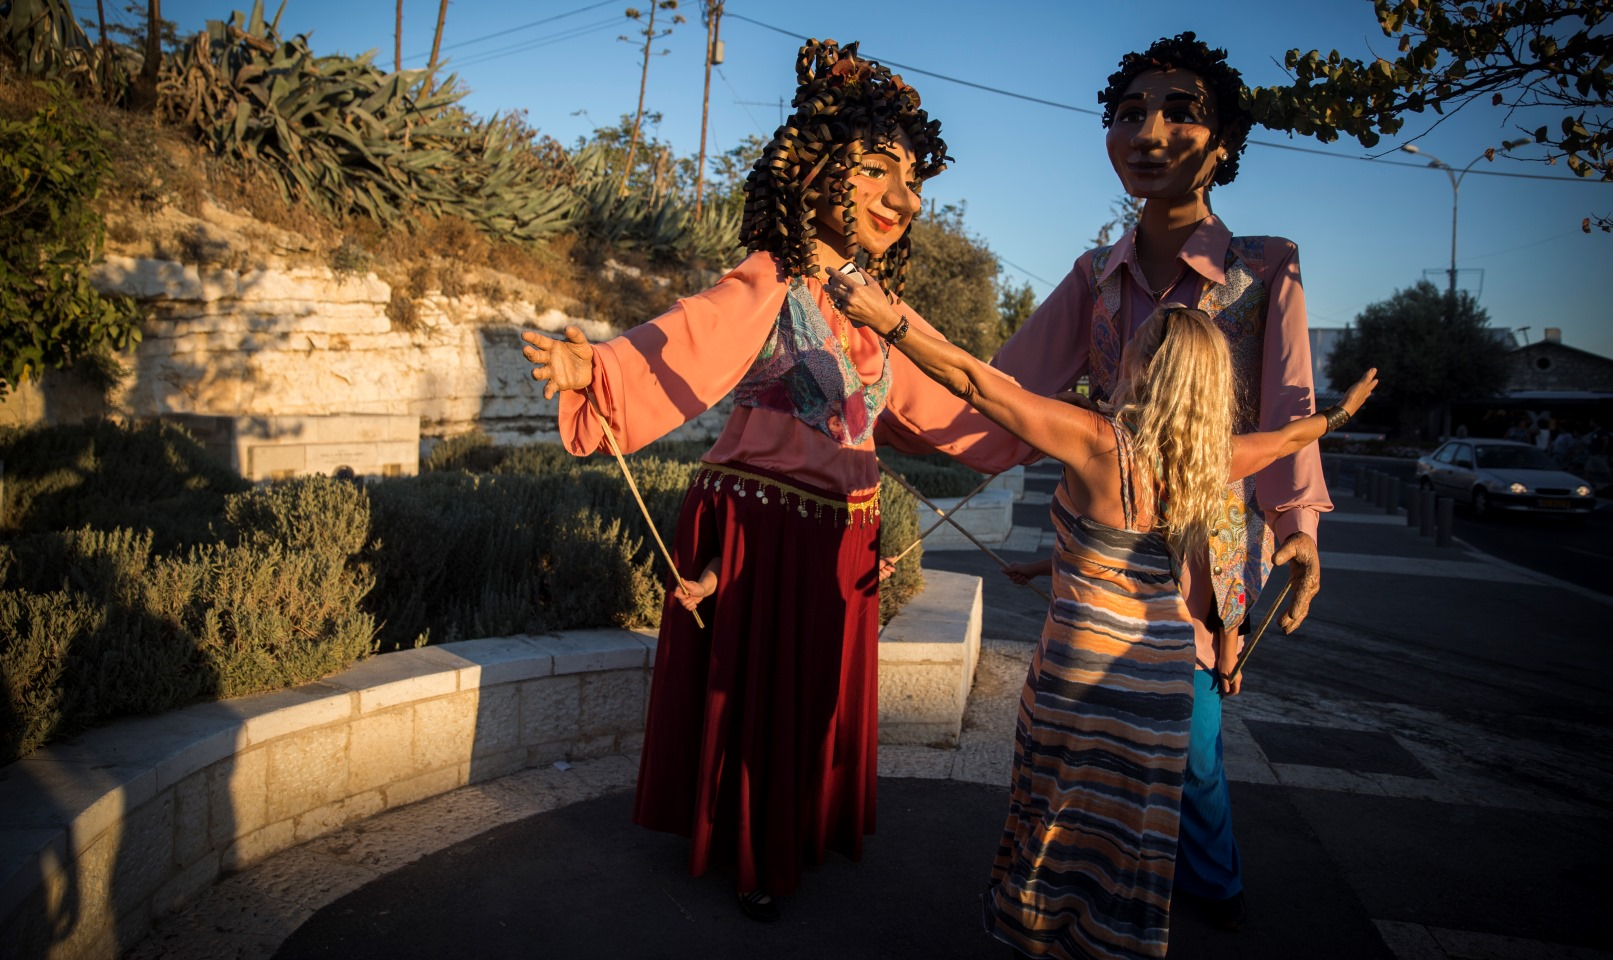 Puppet Festival in Jerusalem. Photo by FLASH90